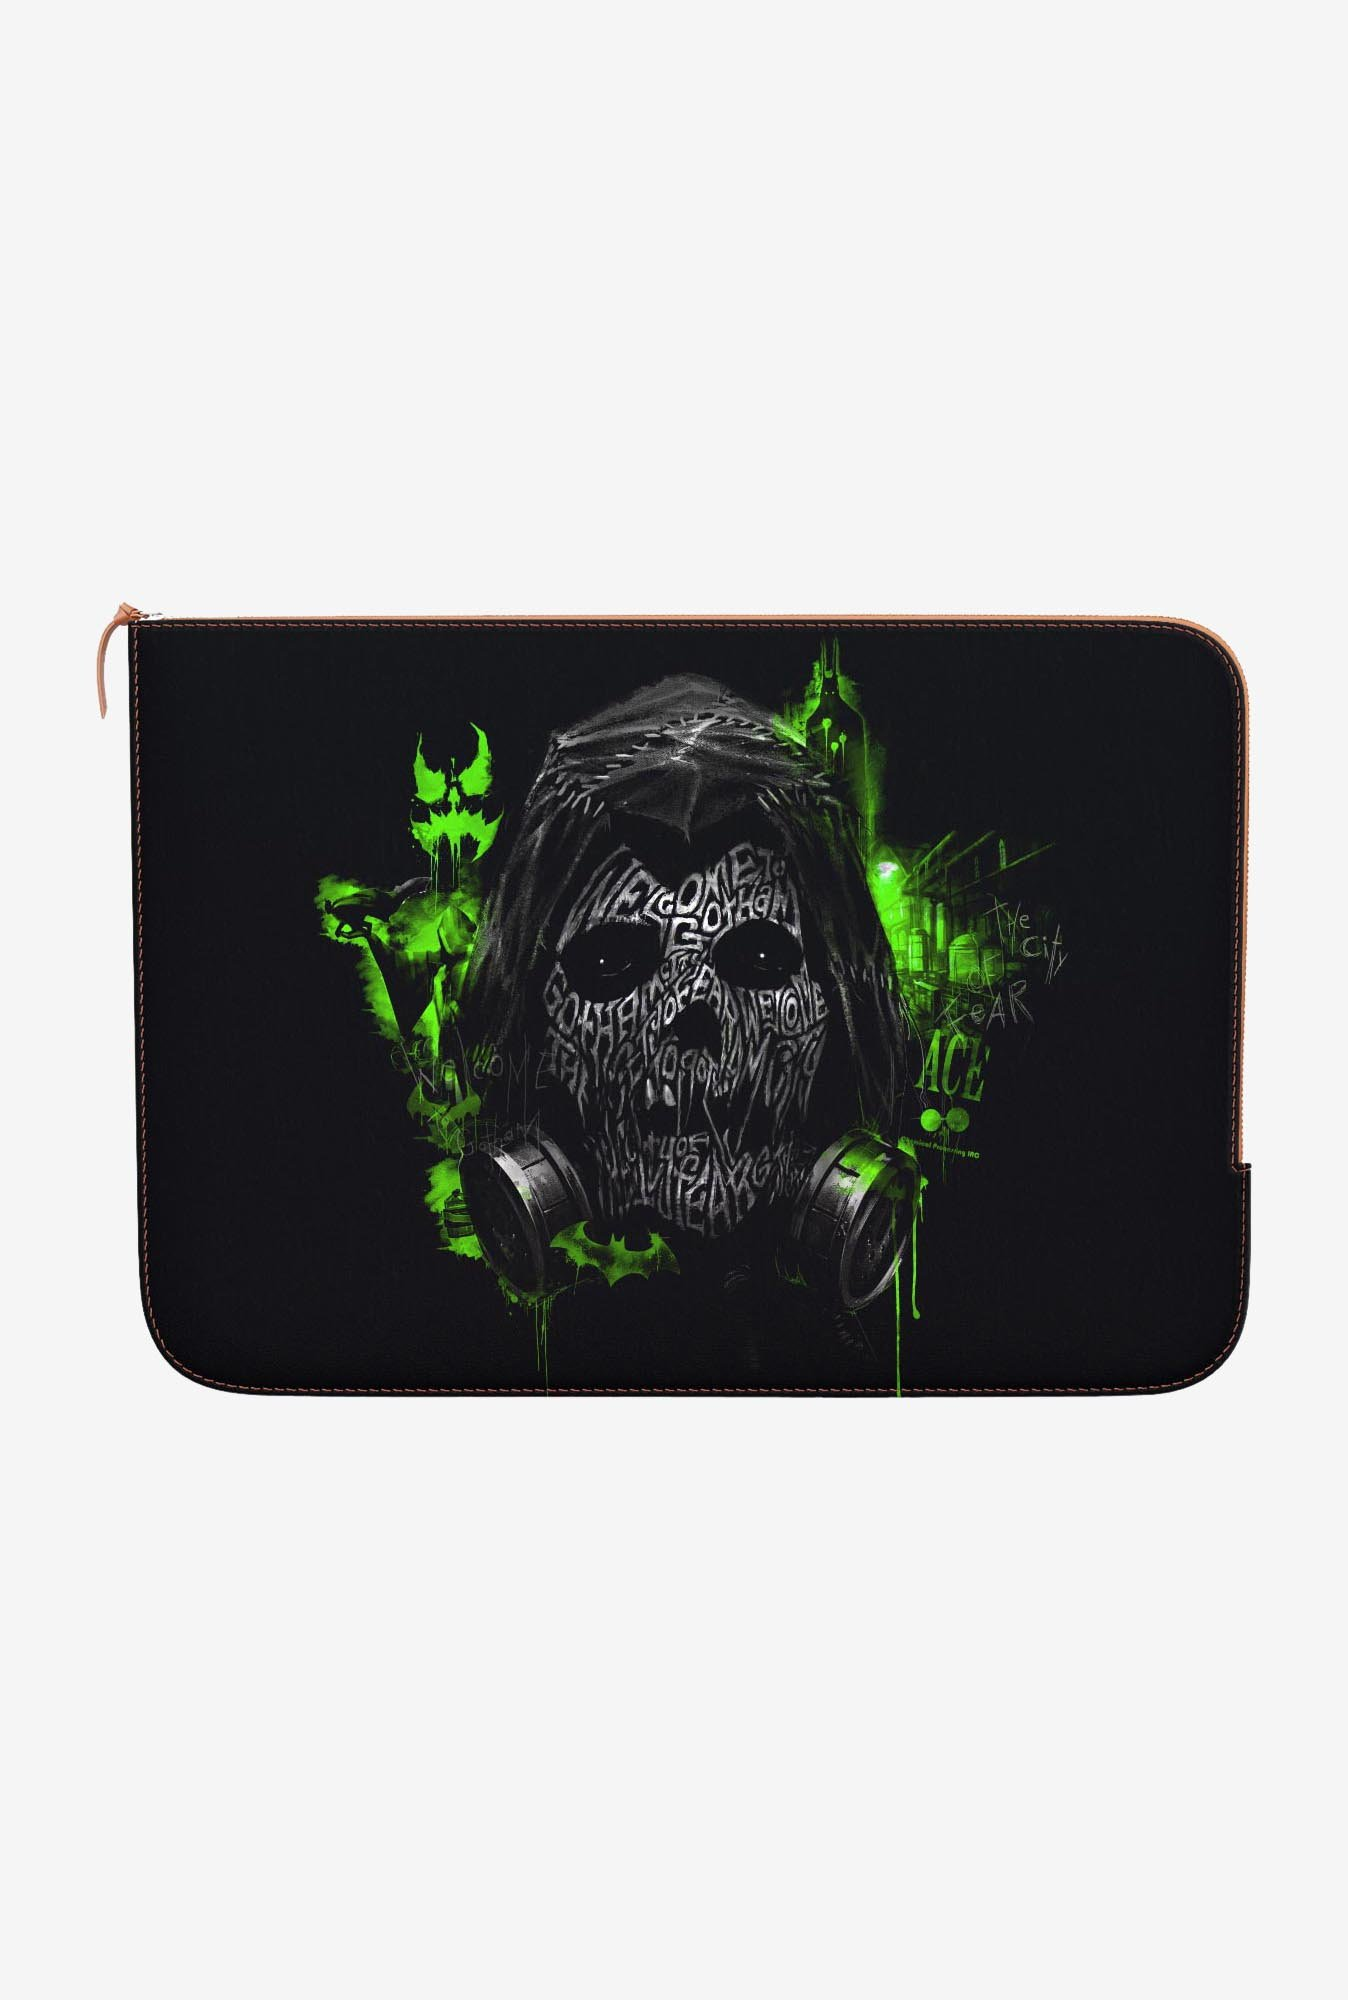 DailyObjects Scarecrow Green MacBook Air 13 Zippered Sleeve